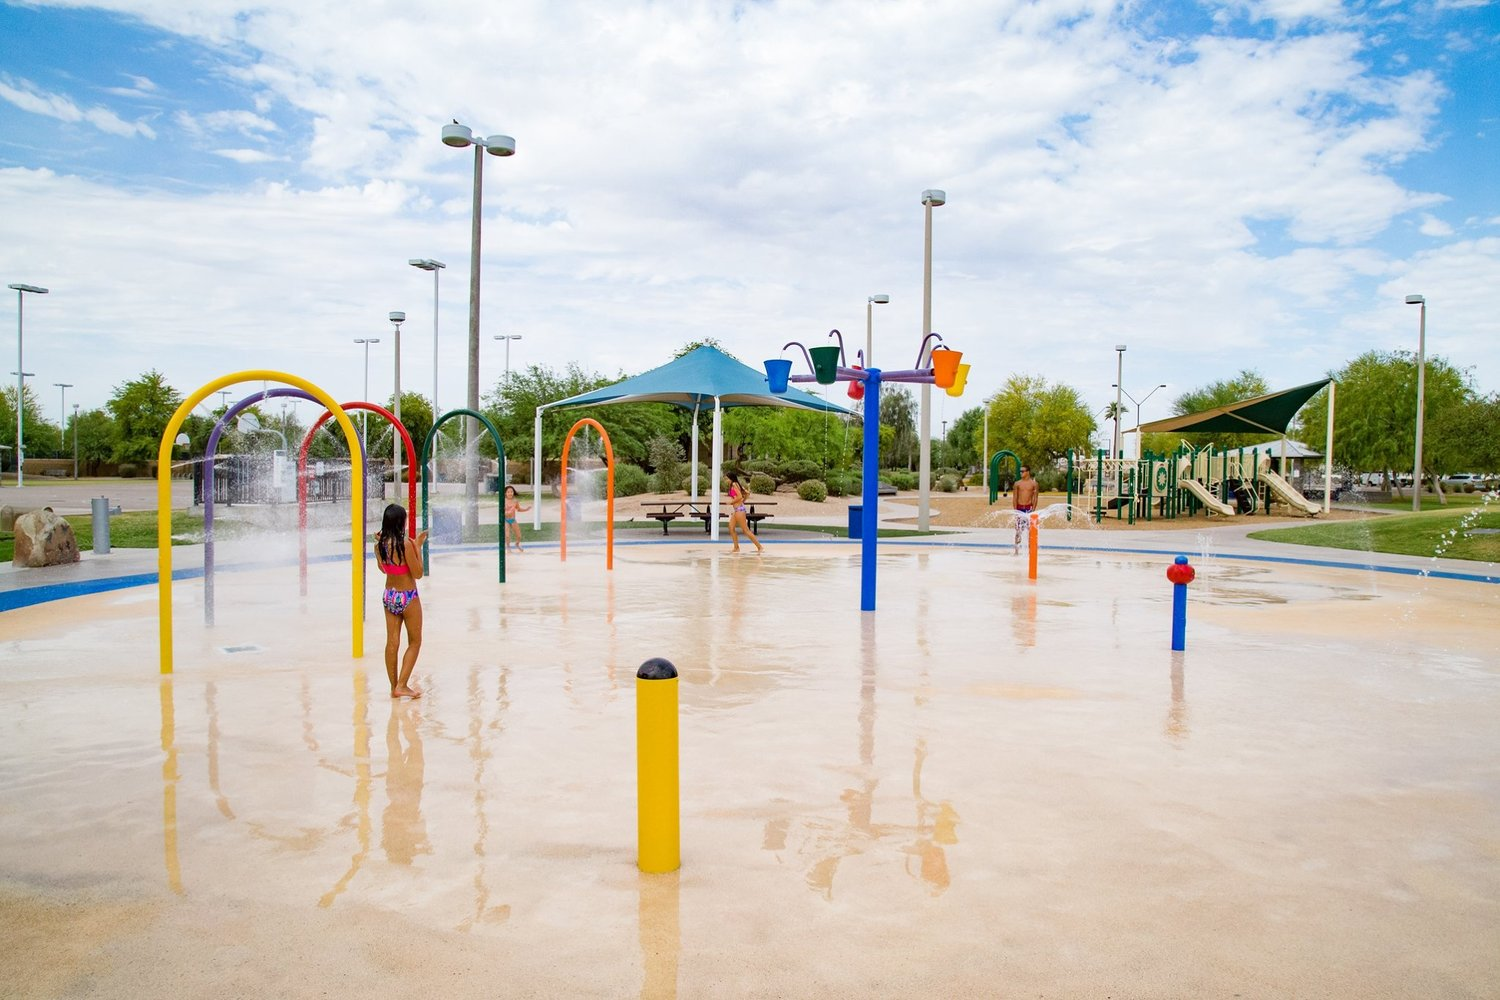 Arizona cities depend on population-based shared state revenues for things like development and maintenance of facilities like Goodyear's Splash Park, recreation programming, police and fire services, and street repairs and maintenance, among others.